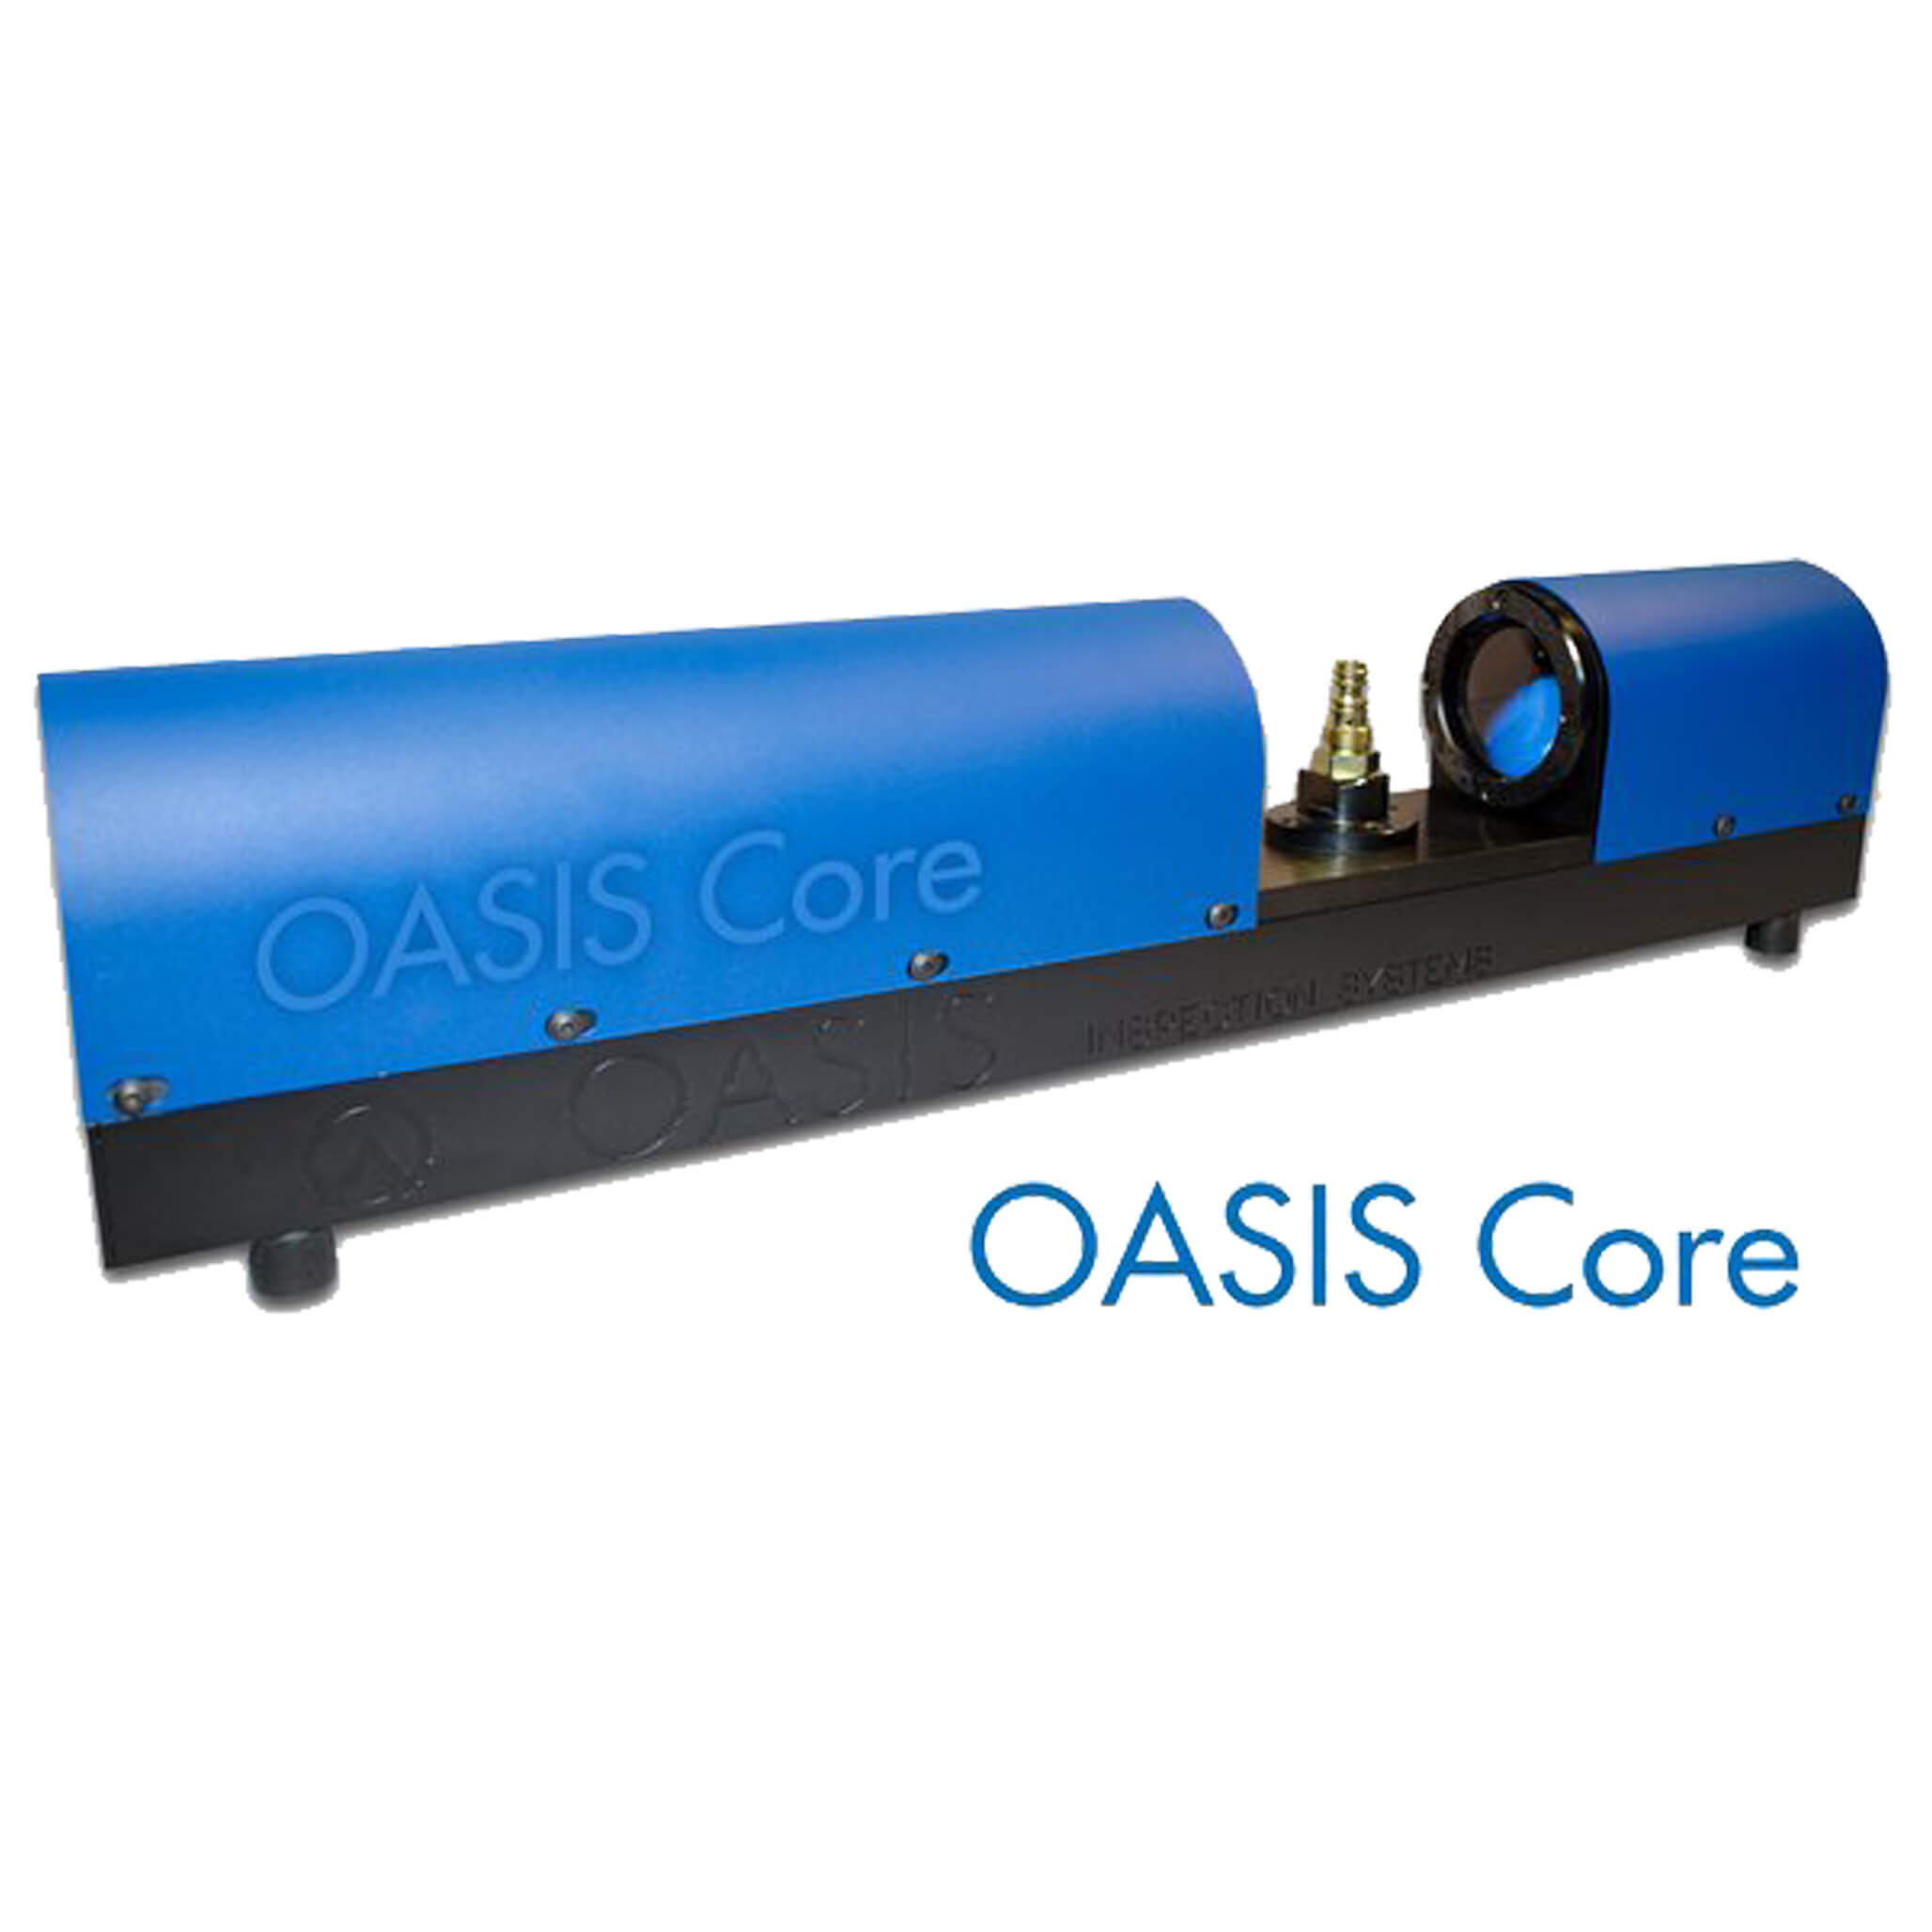 Oasis core non contact measurement of small parts